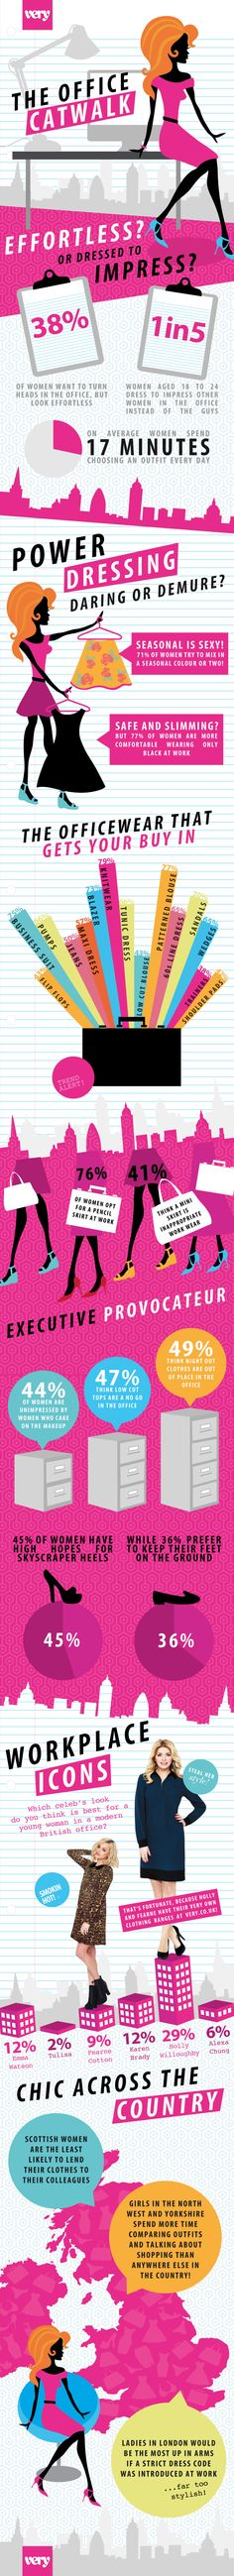 The Office Catwalk - Why Work Fashion Can be A Full Time Job - Infographic